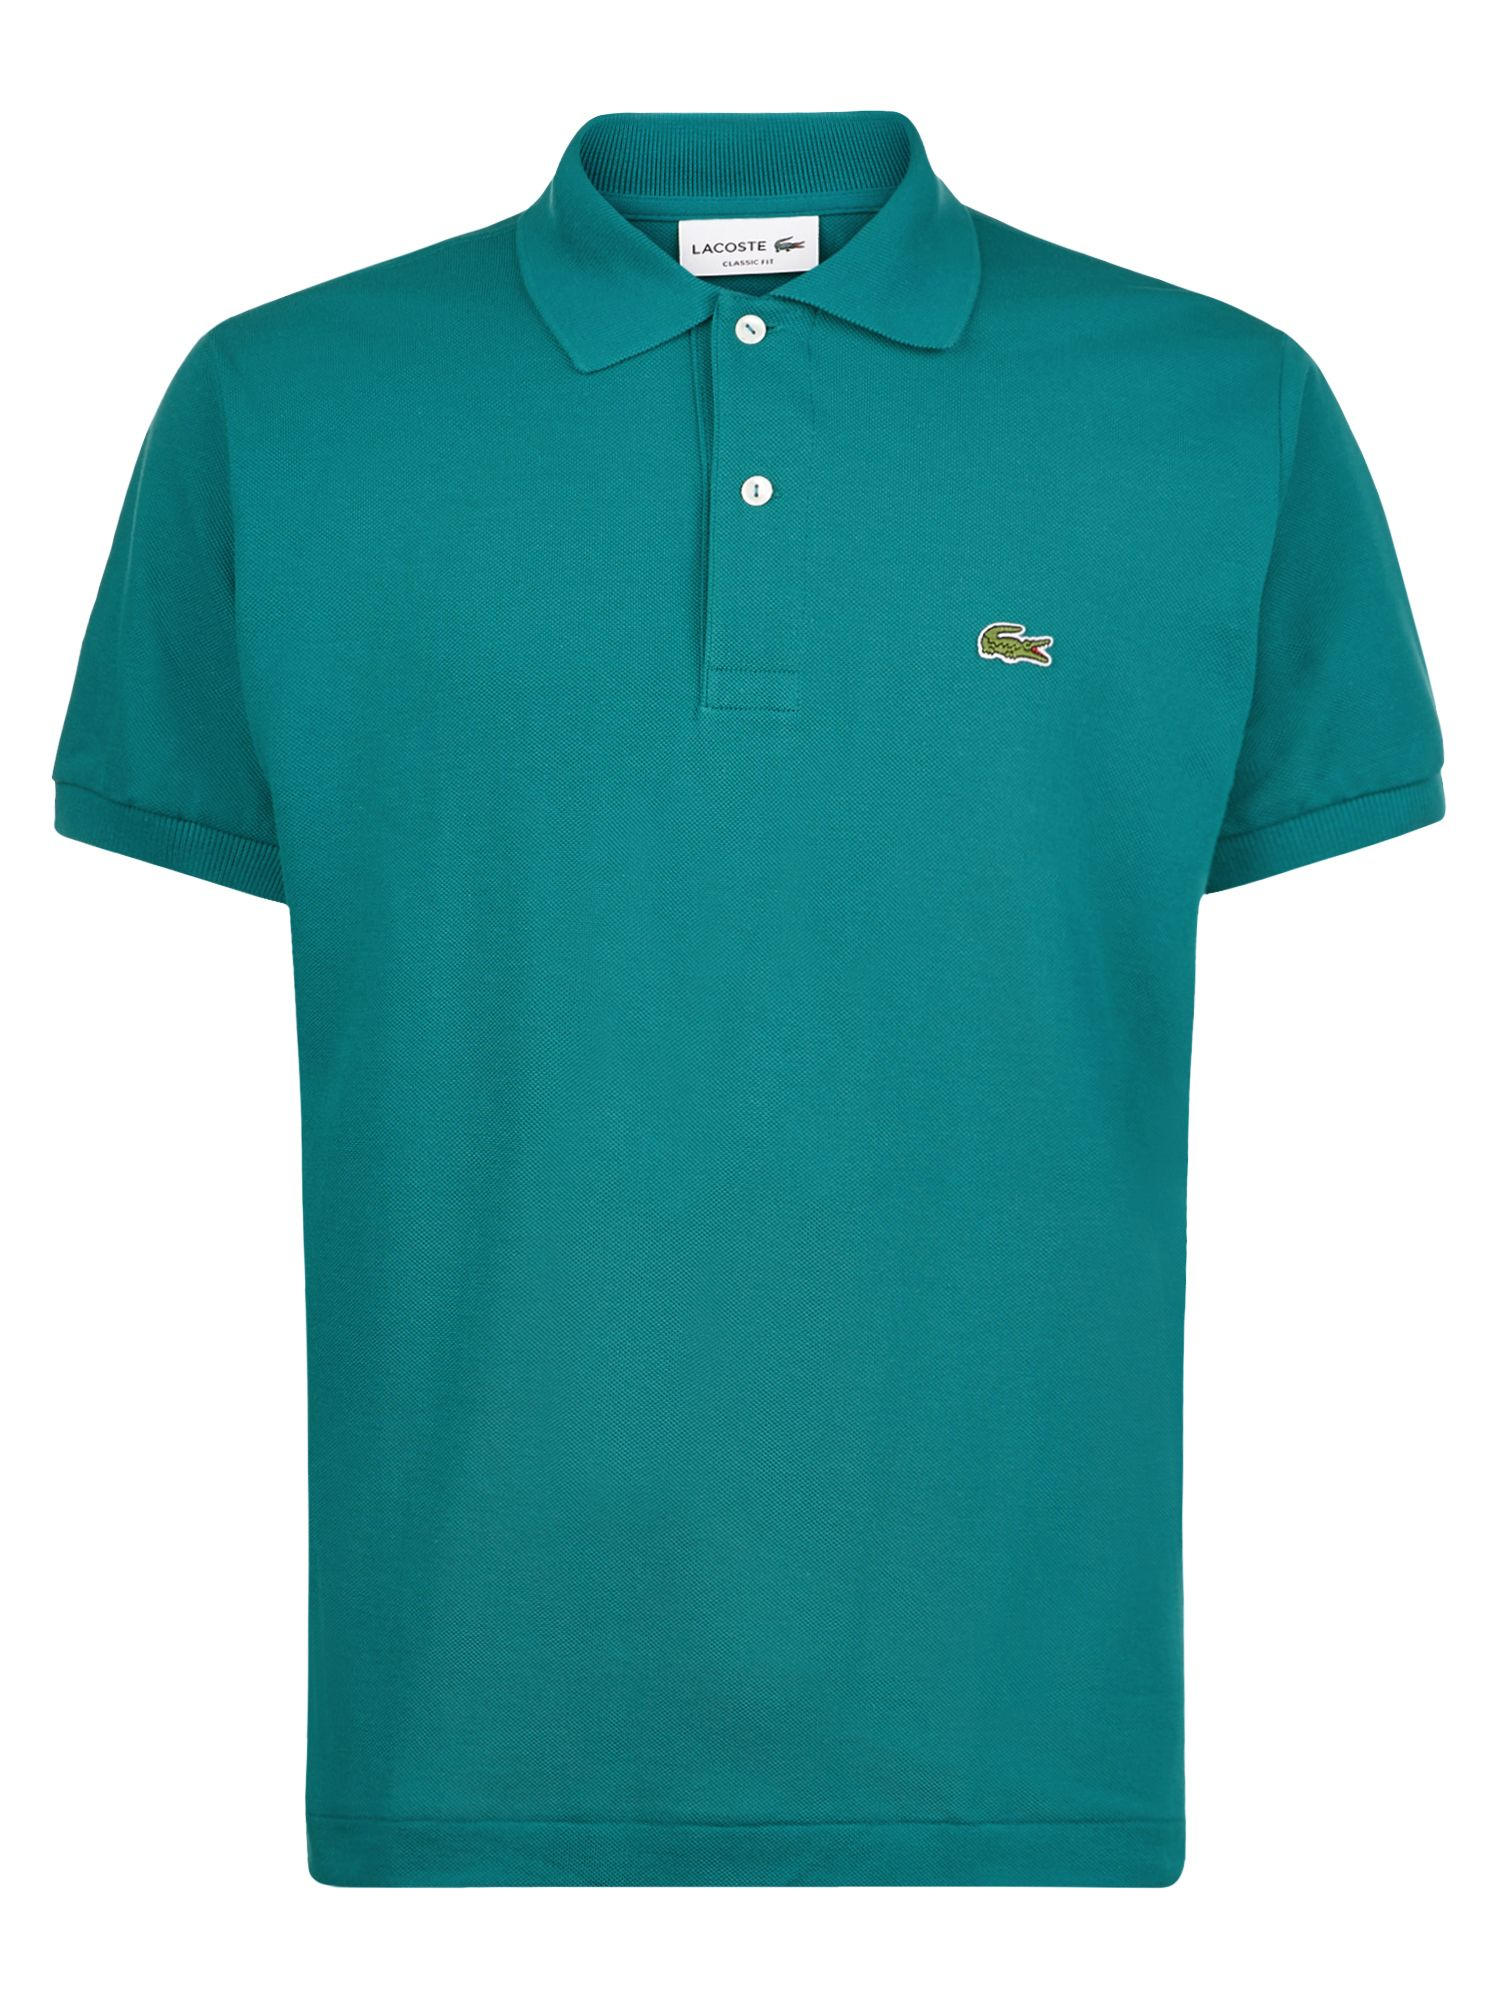 Men's Lacoste Classic L.12.12 Polo, Emerald Green